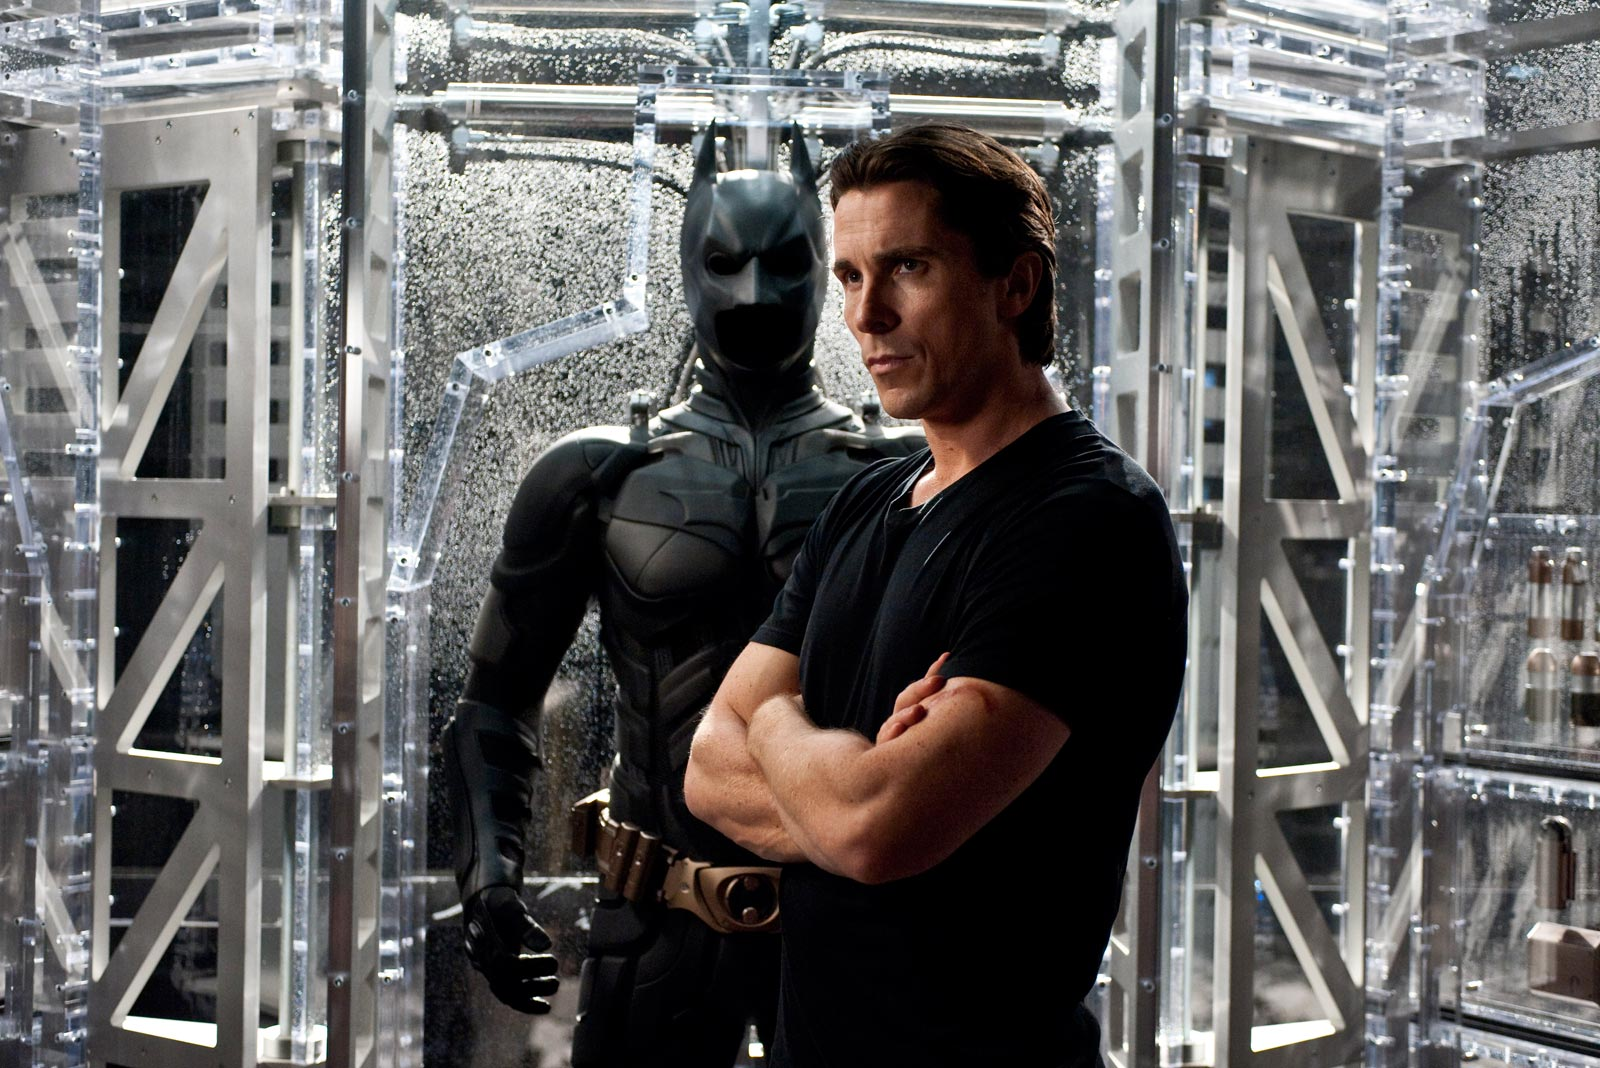 Christian Bale is Batman in The Dark Knight Rises. Photos courtesy of Warner Bros. Pictures, http://www.thedarkknightrises.com.